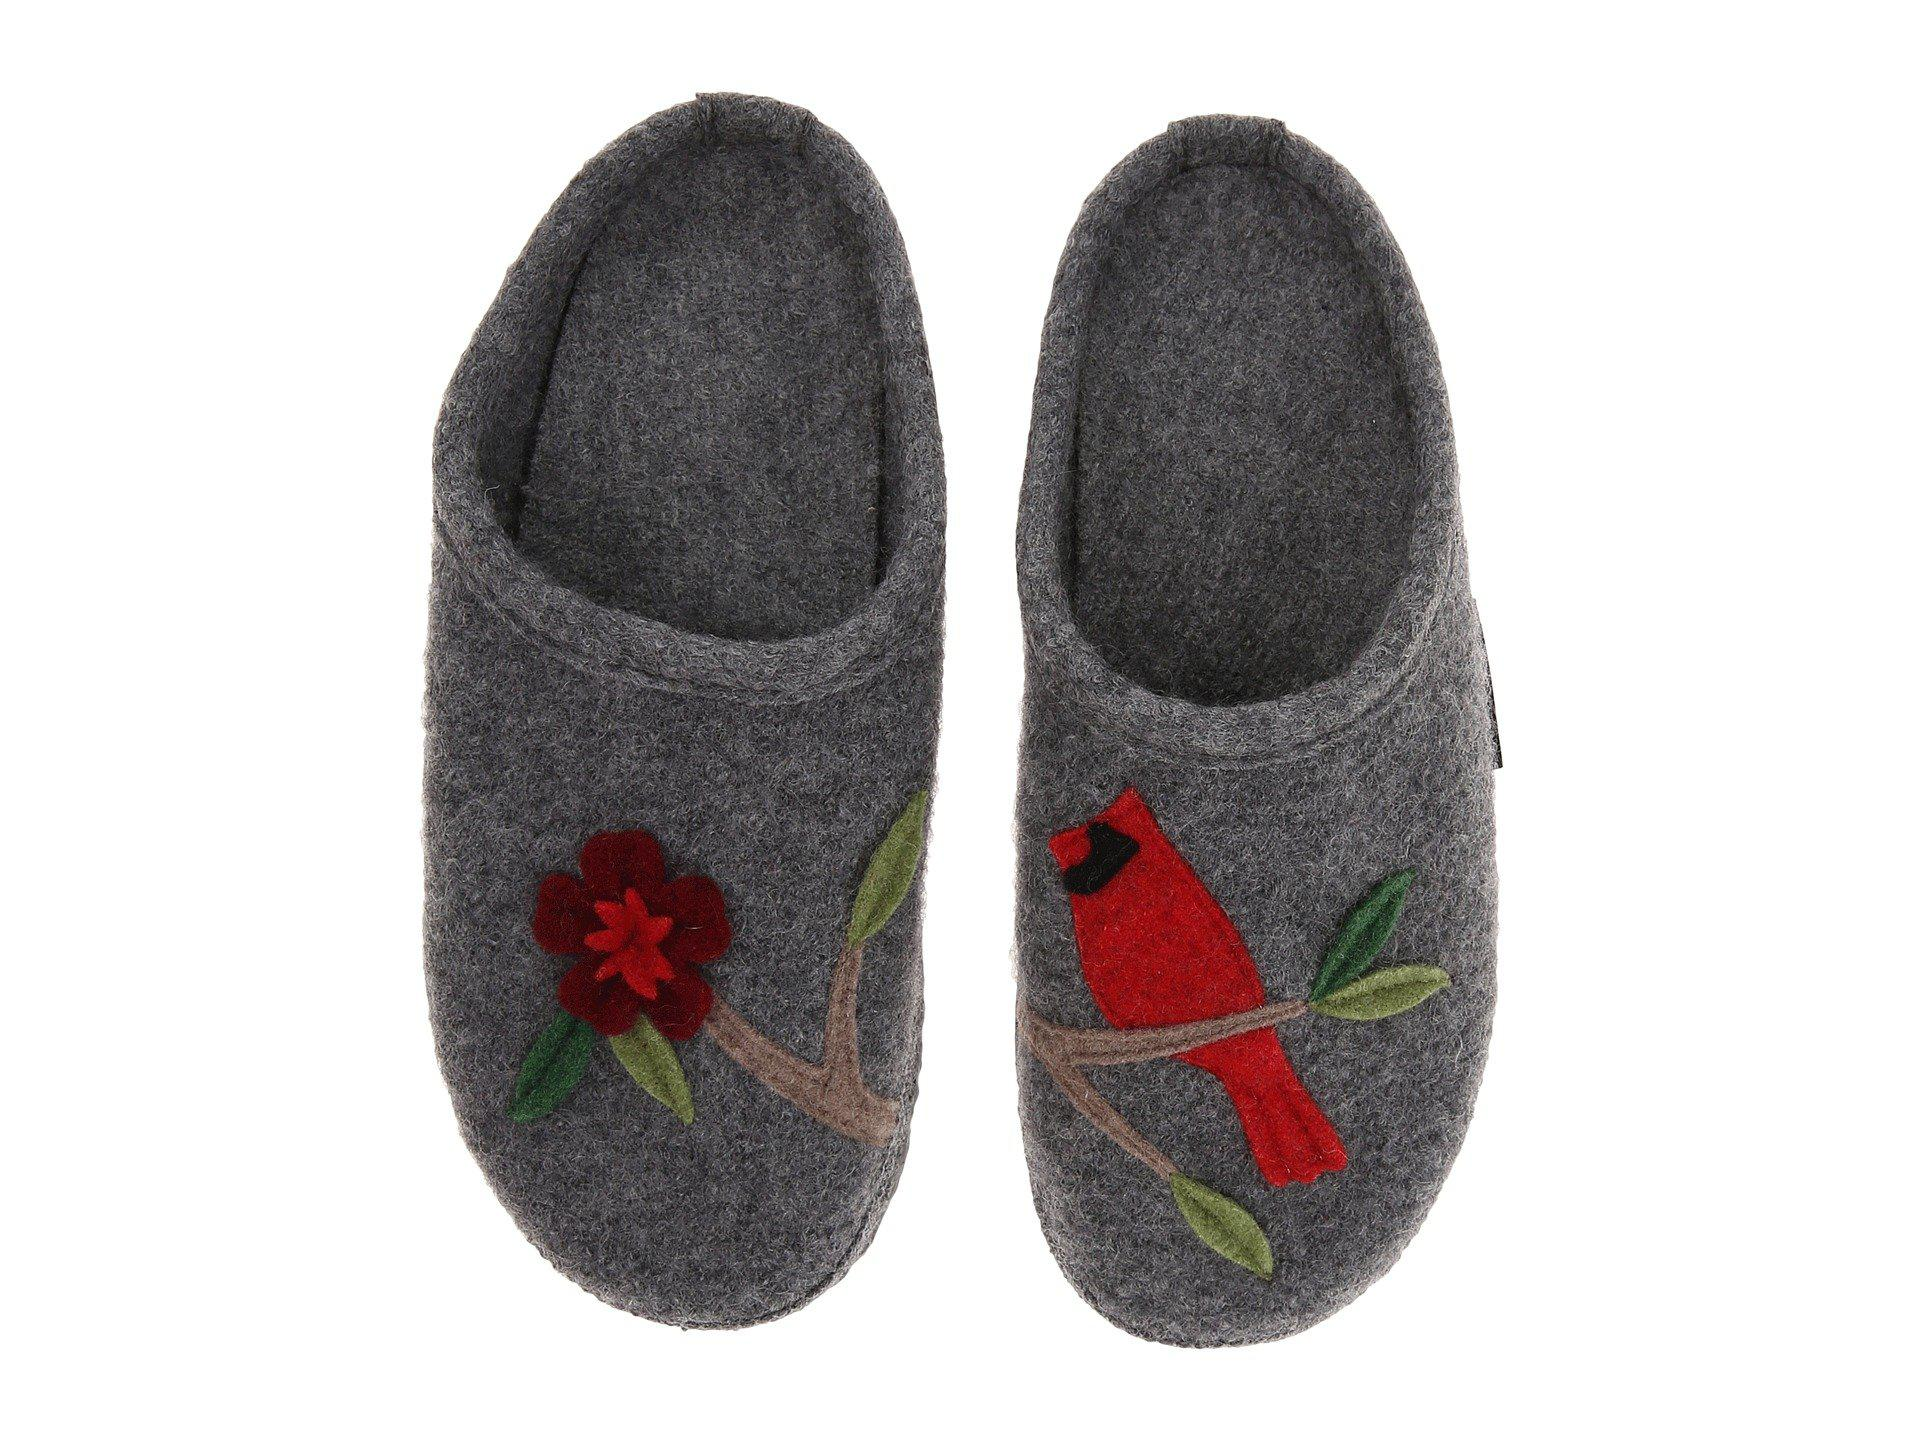 adc3e688220fbb Lyst - Giesswein Angela (schiefer) Women s Slippers in Gray - Save 8%